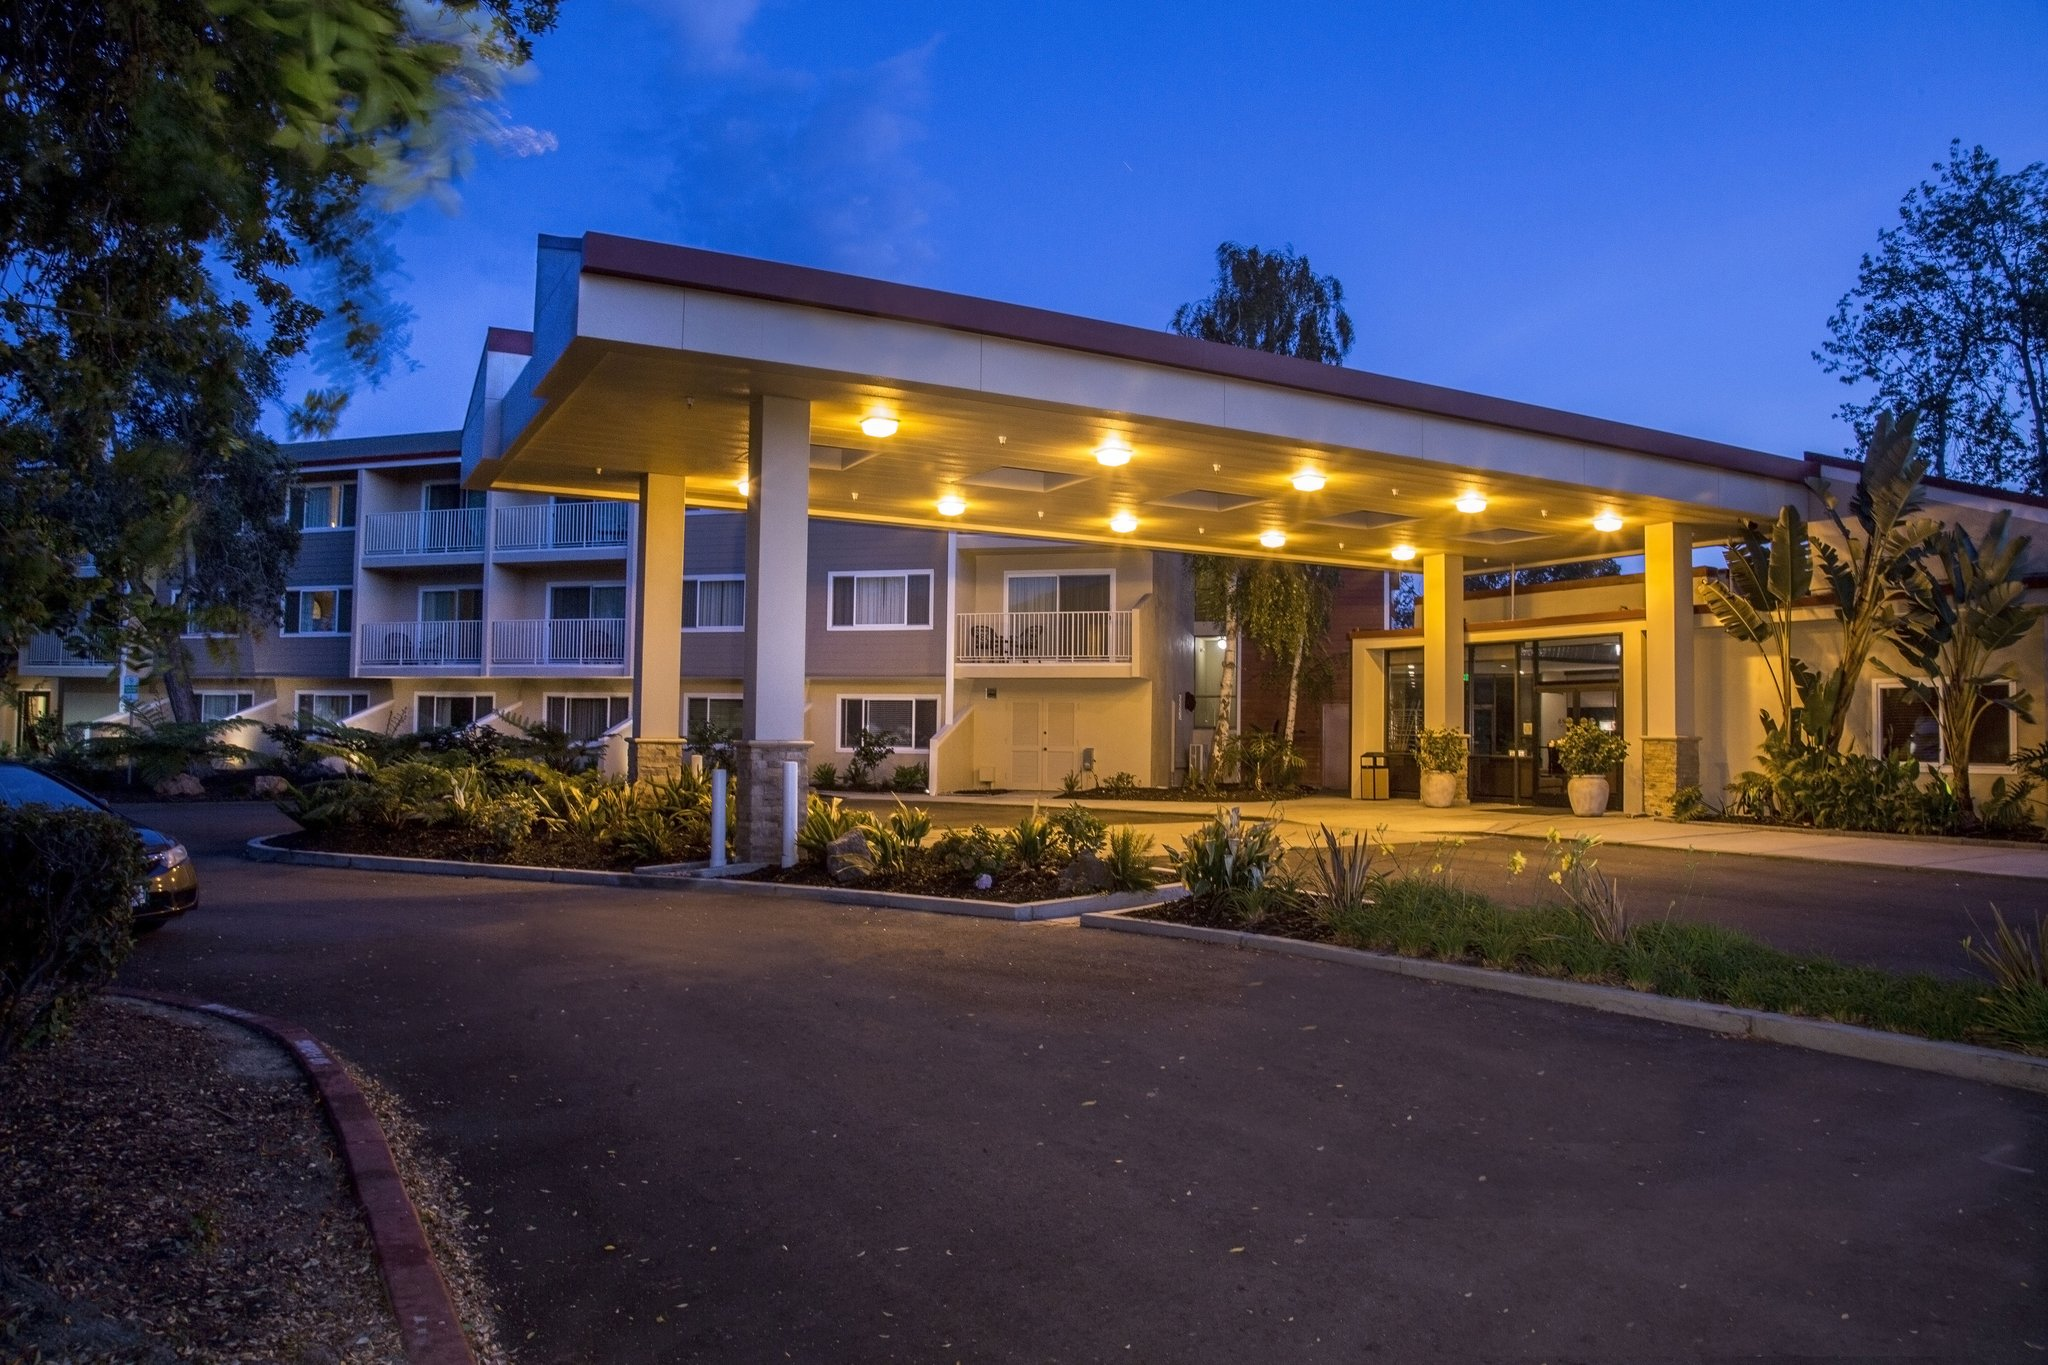 Hotel in Fremont CA | Best Western Plus Garden Court Inn